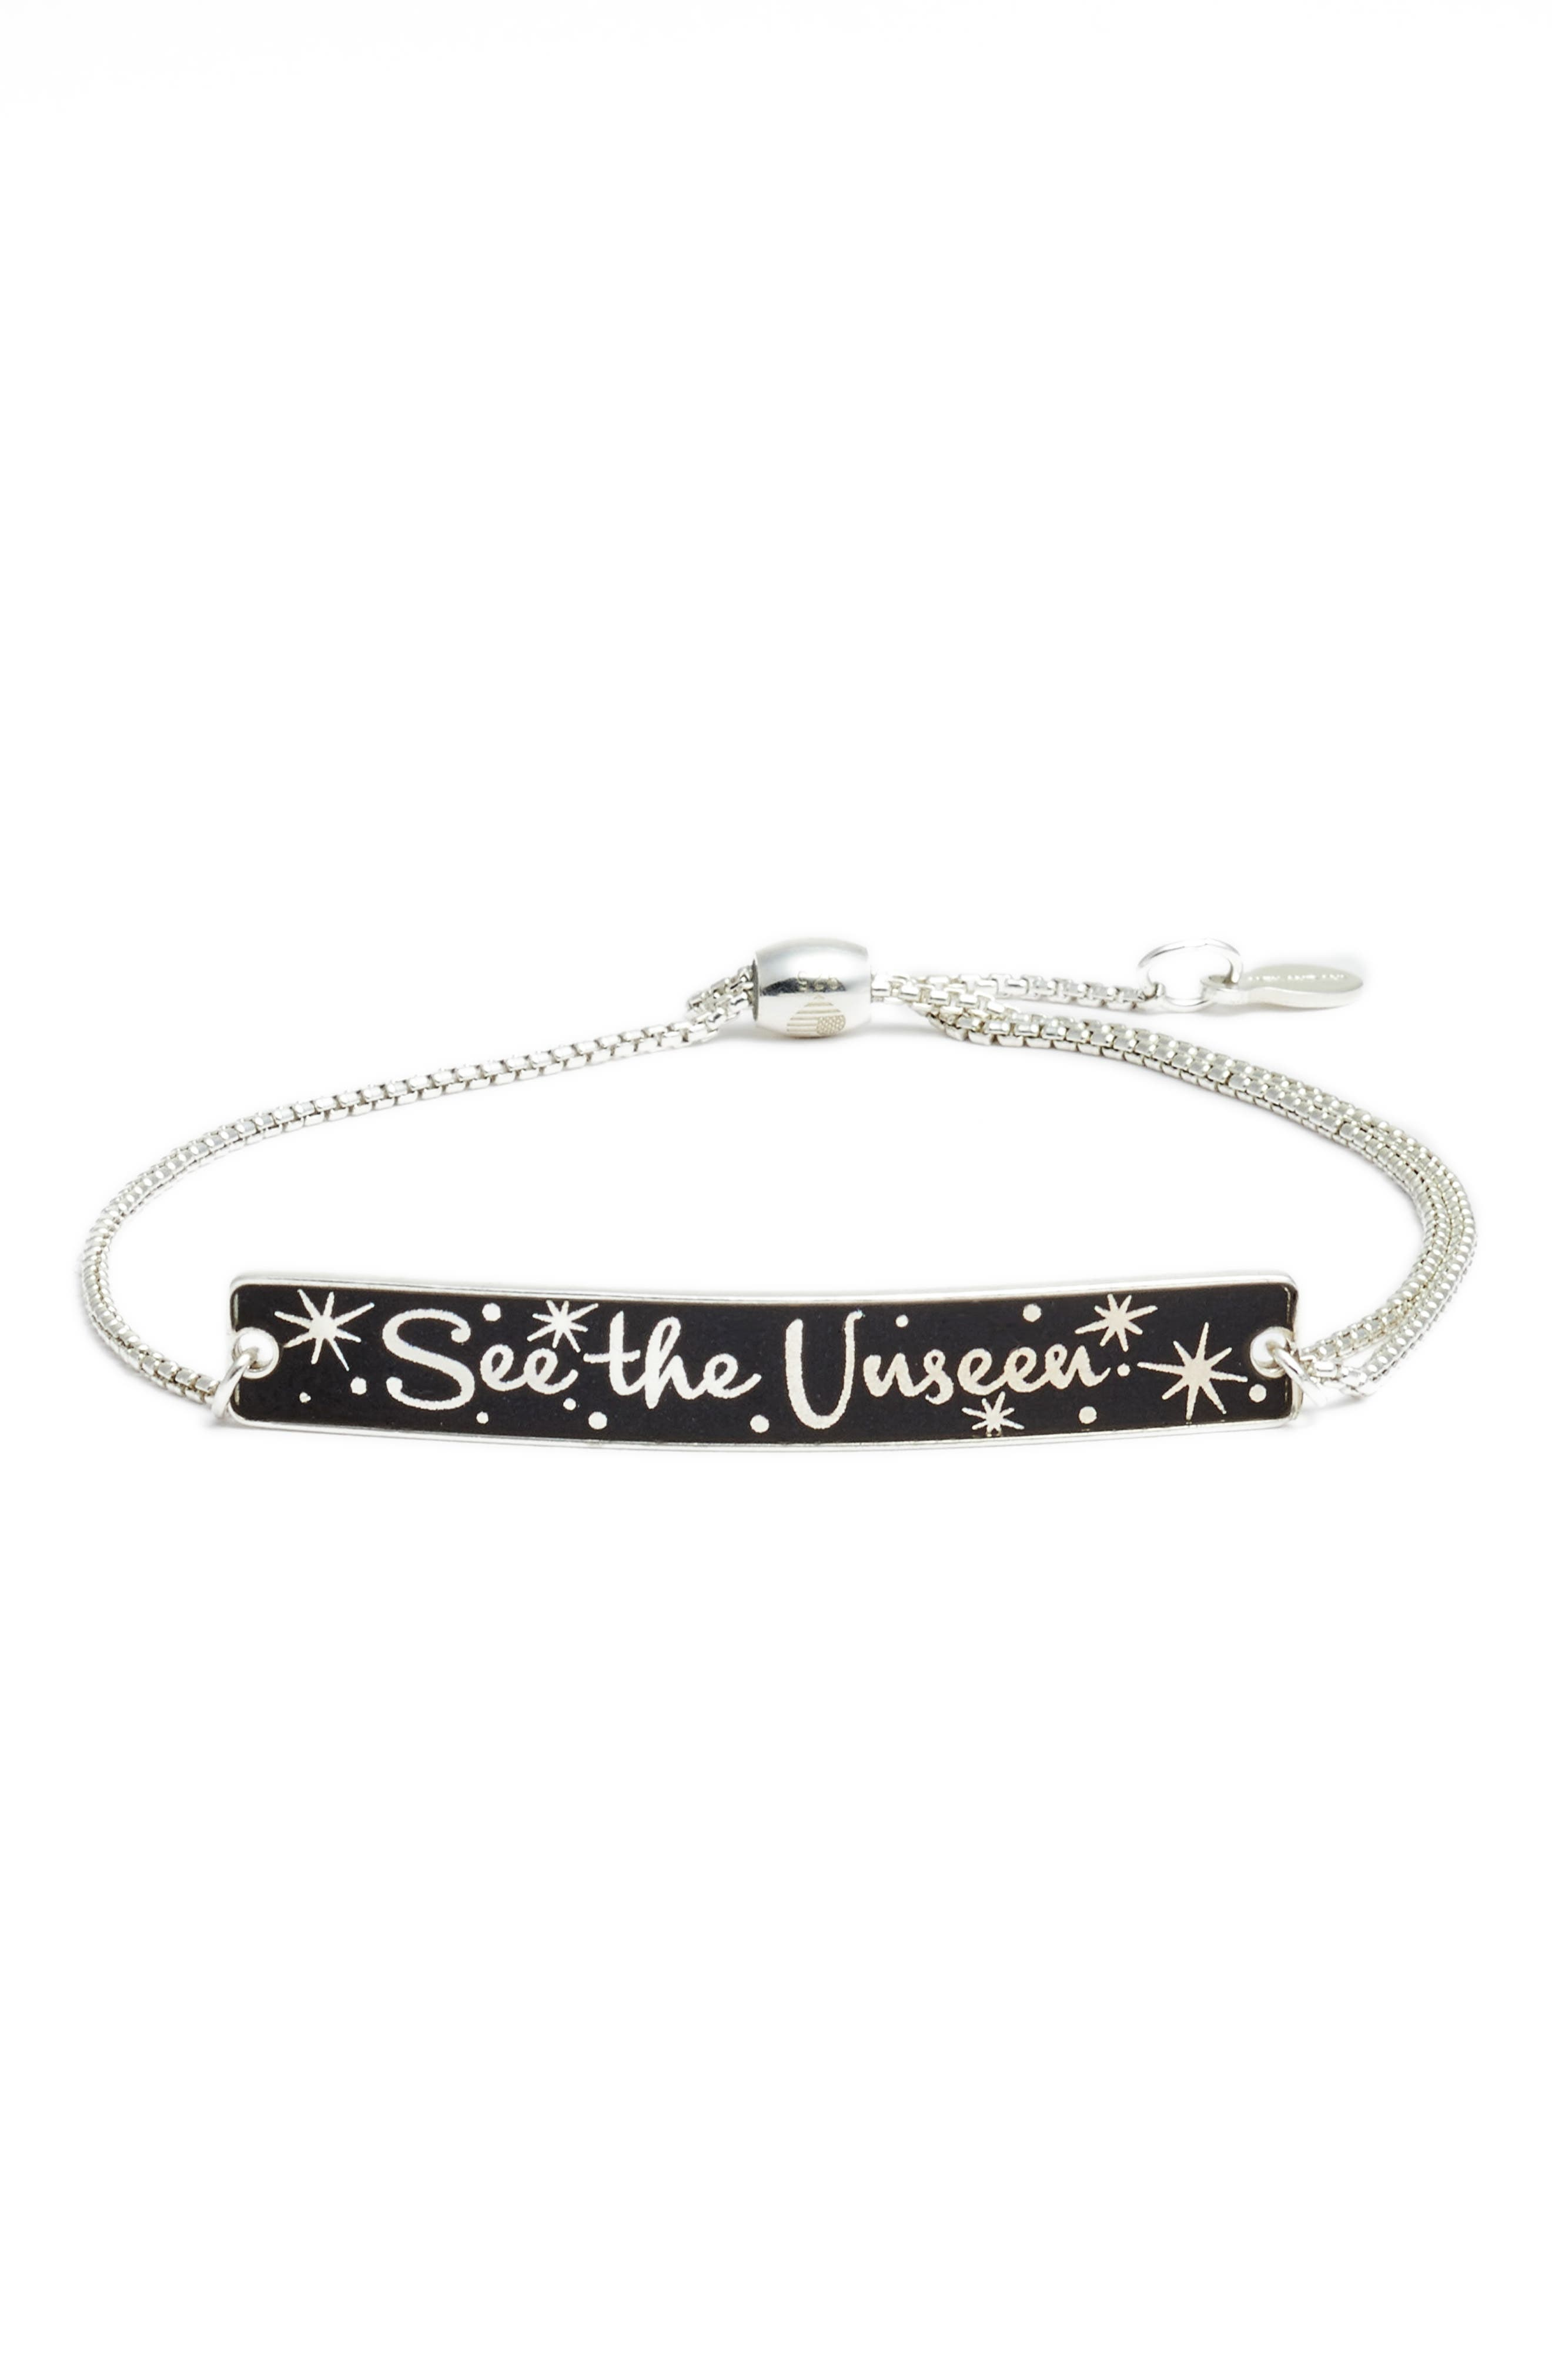 x Disney<sup>®</sup> 'A Wrinkle in Time' See the Unseen Pull-Chain Bracelet,                             Main thumbnail 1, color,                             Silver